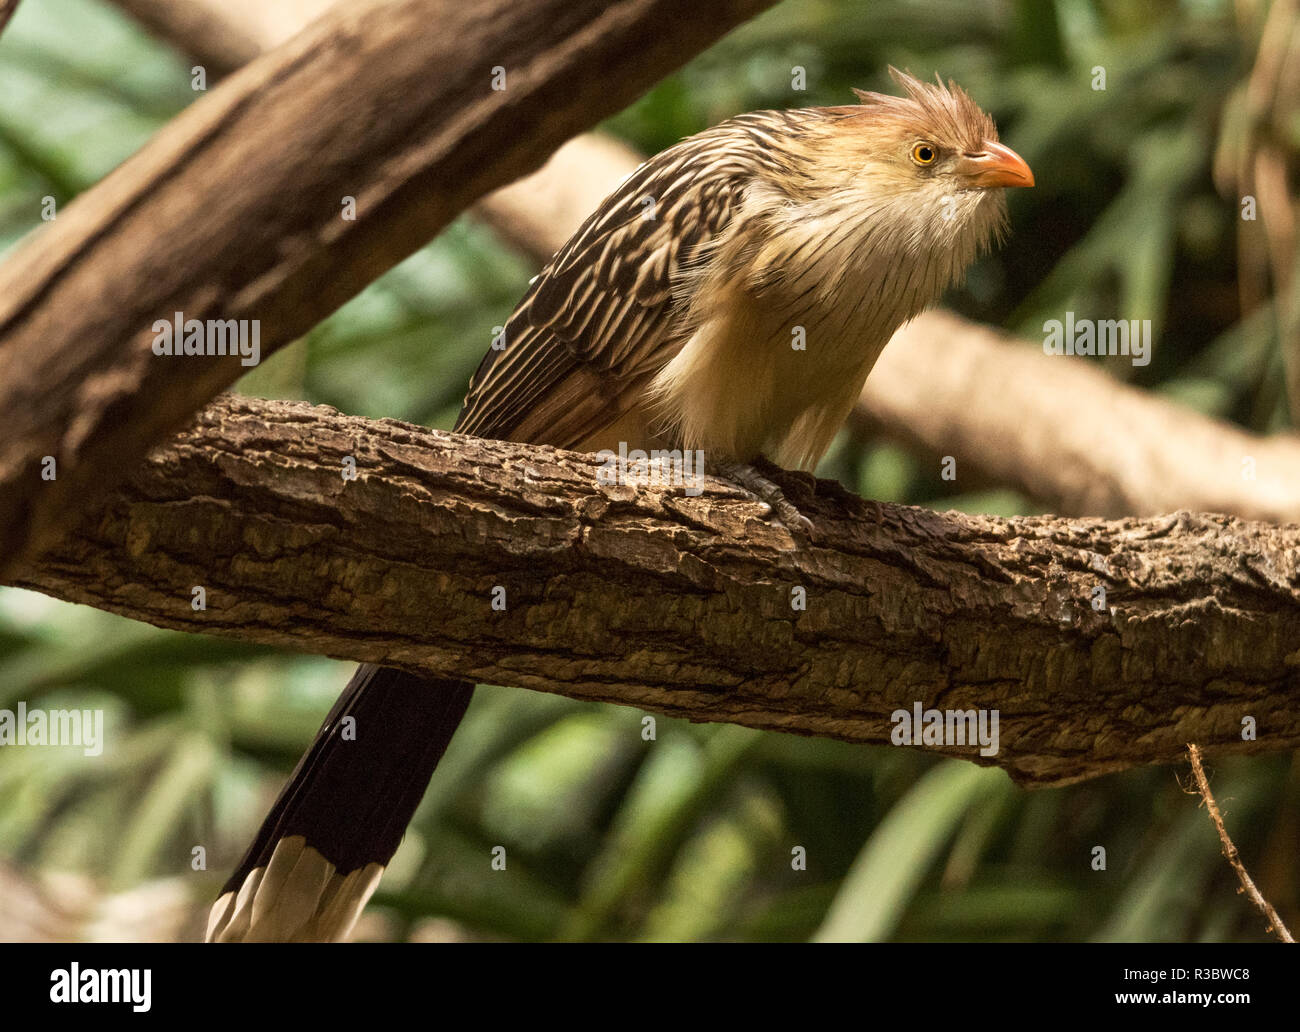 The Guira Cuckoo (Guira guira) is a native of South America.This bird was  photographed in captivity - Stock Image